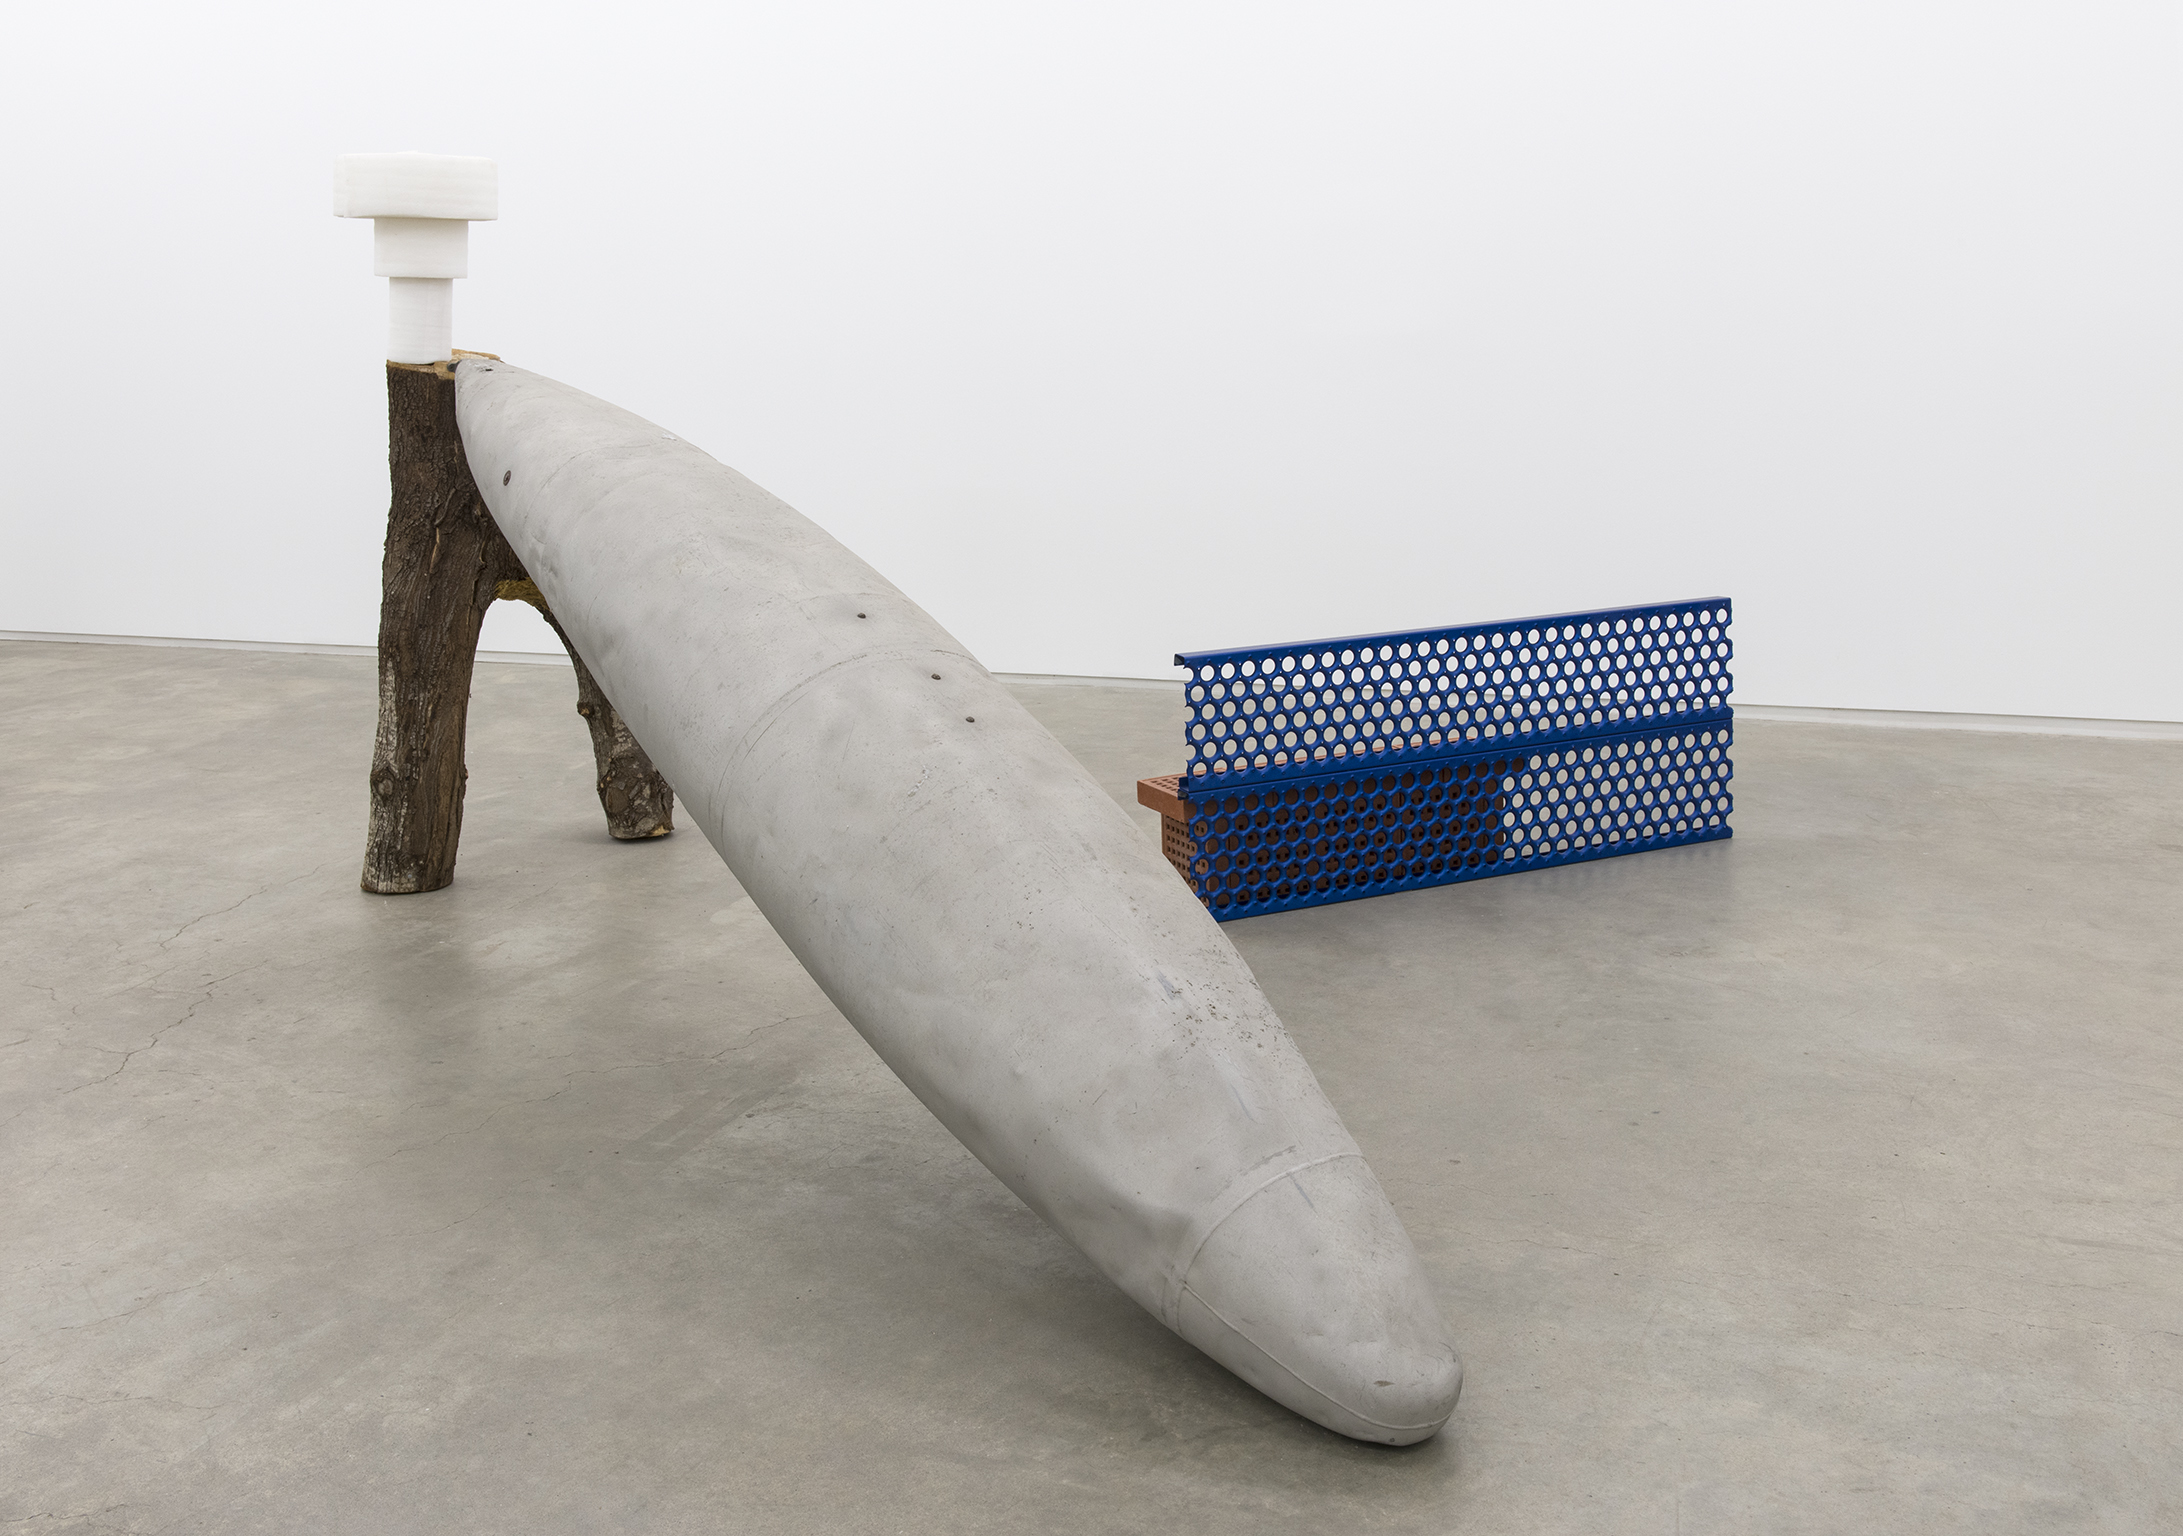 Jerry Pethick, ​Trough​, 2001, wood, plastic, clay, anodized aluminum, sandblasted aluminum​, 70 x 134 x 120 in. (178 x 340 x 305 cm)​ by